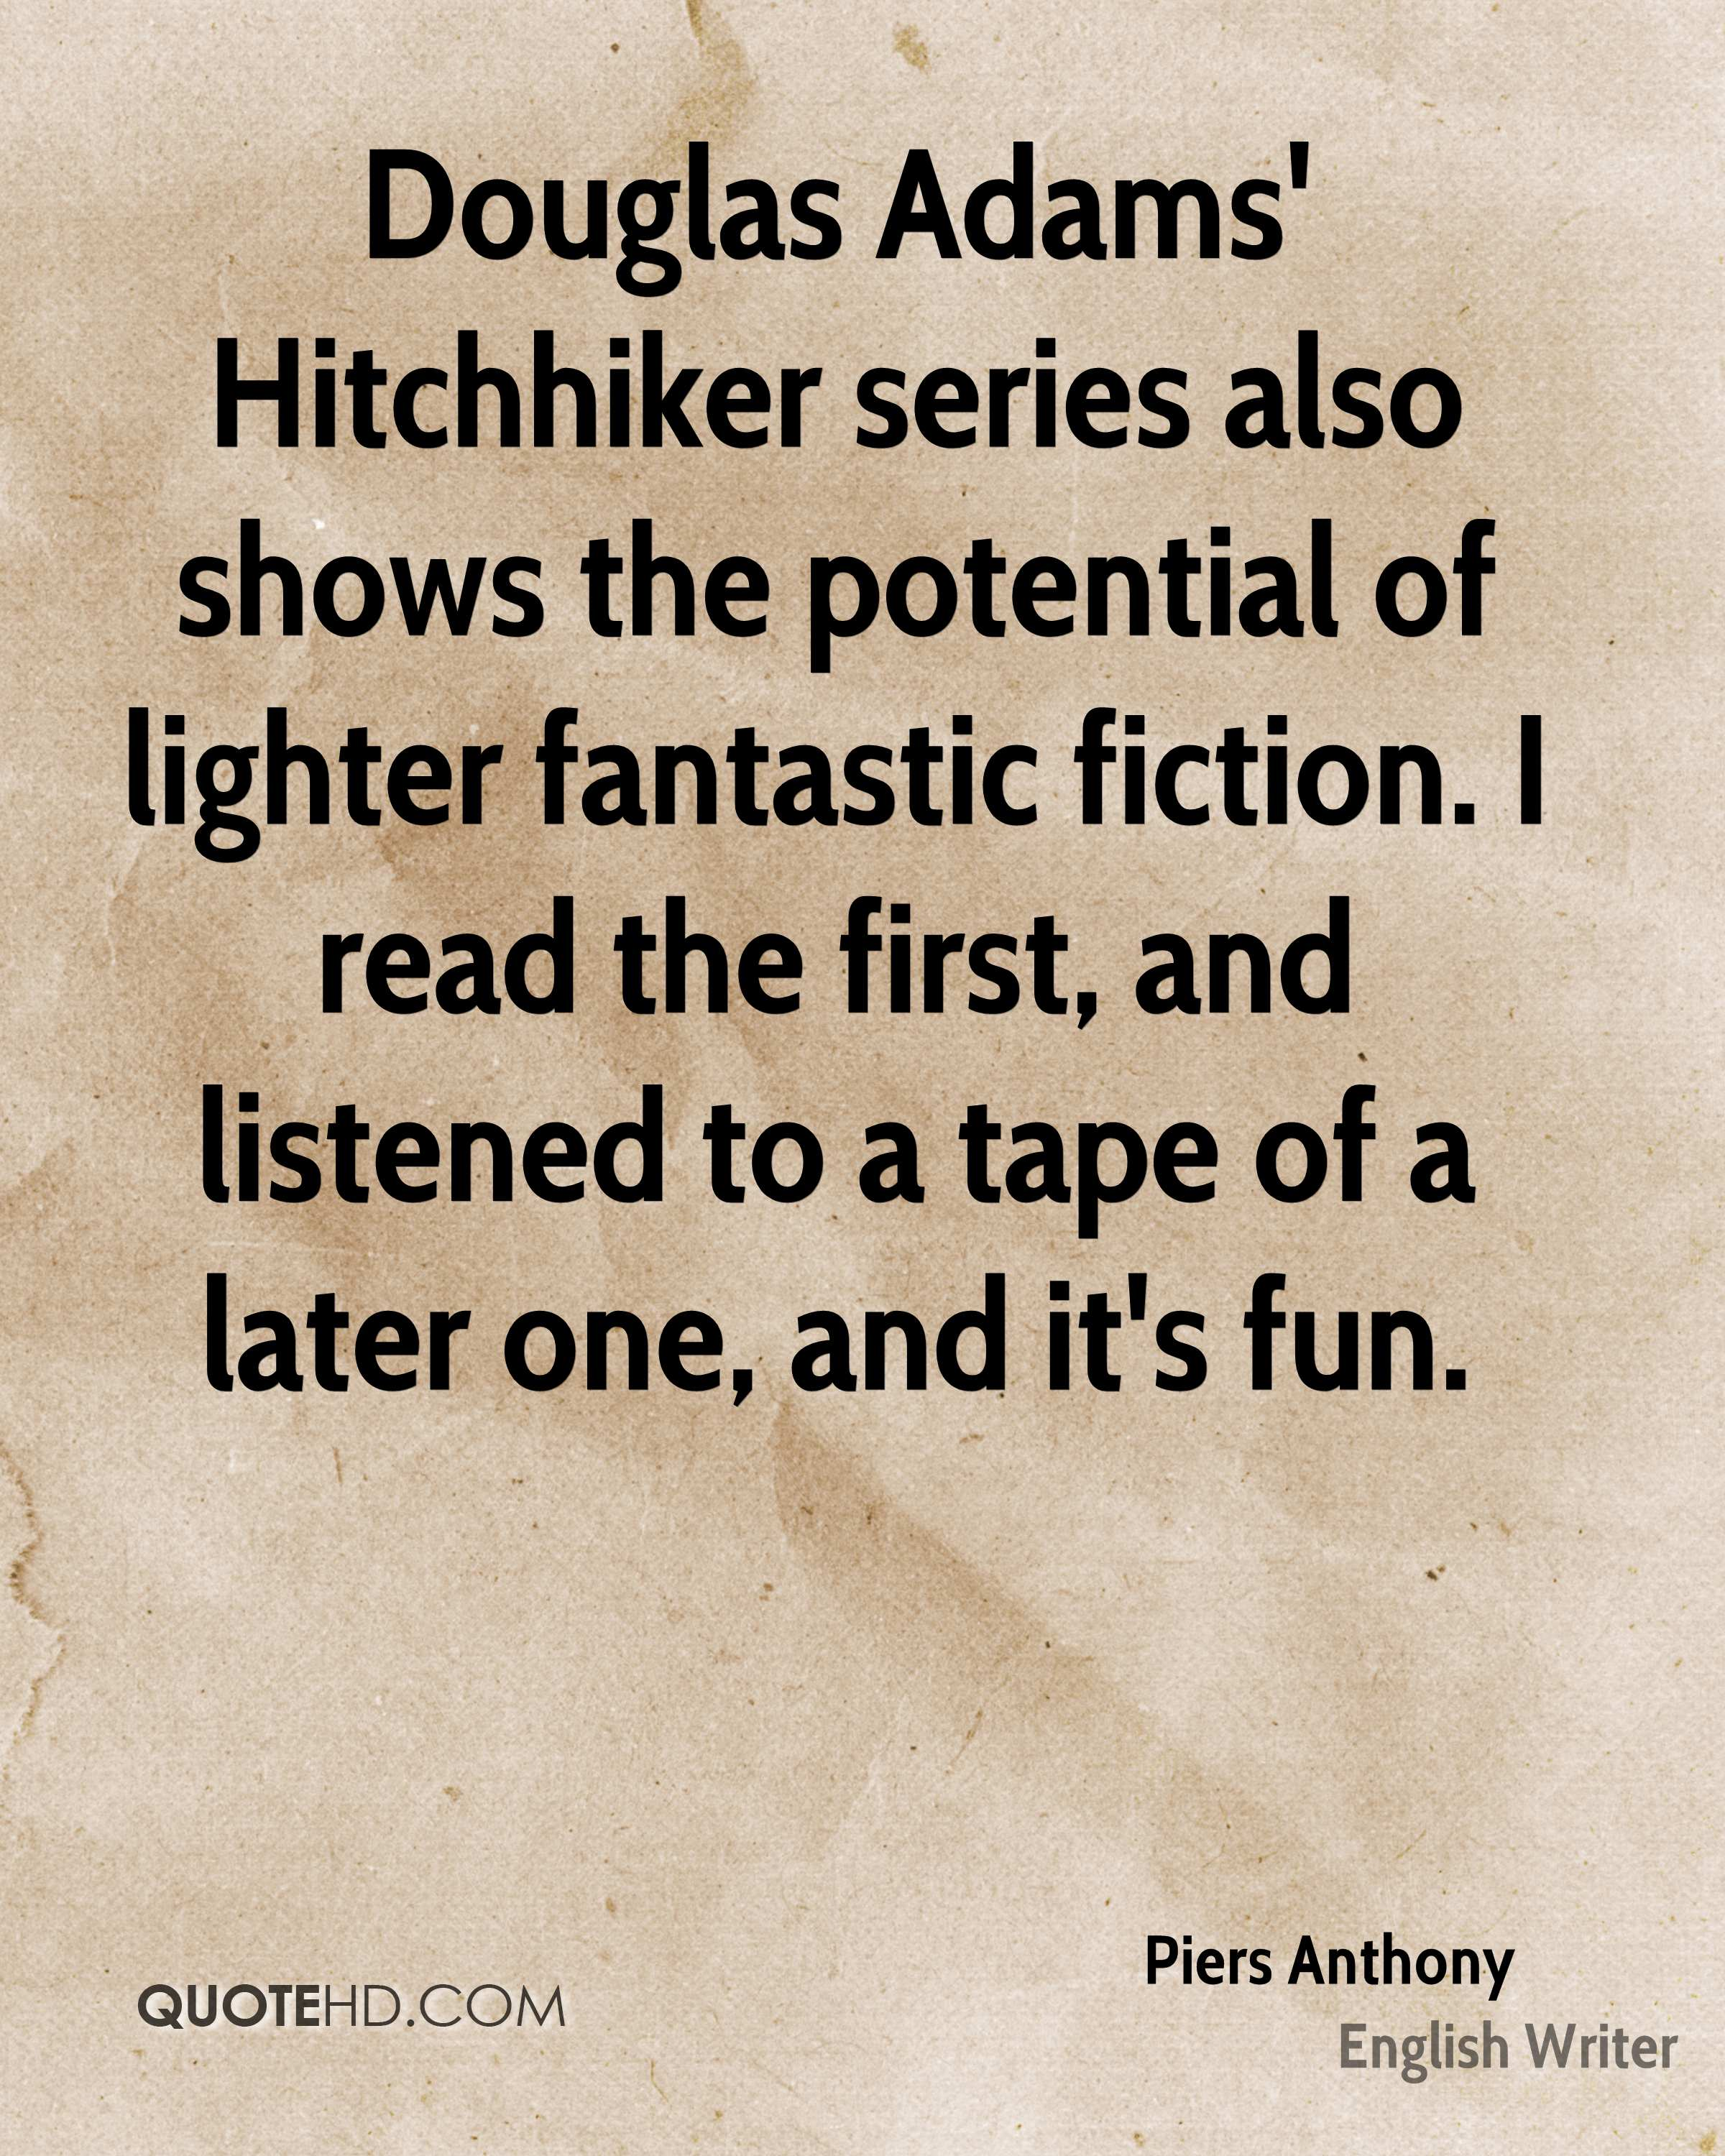 Douglas Adams' Hitchhiker series also shows the potential of lighter fantastic fiction. I read the first, and listened to a tape of a later one, and it's fun.